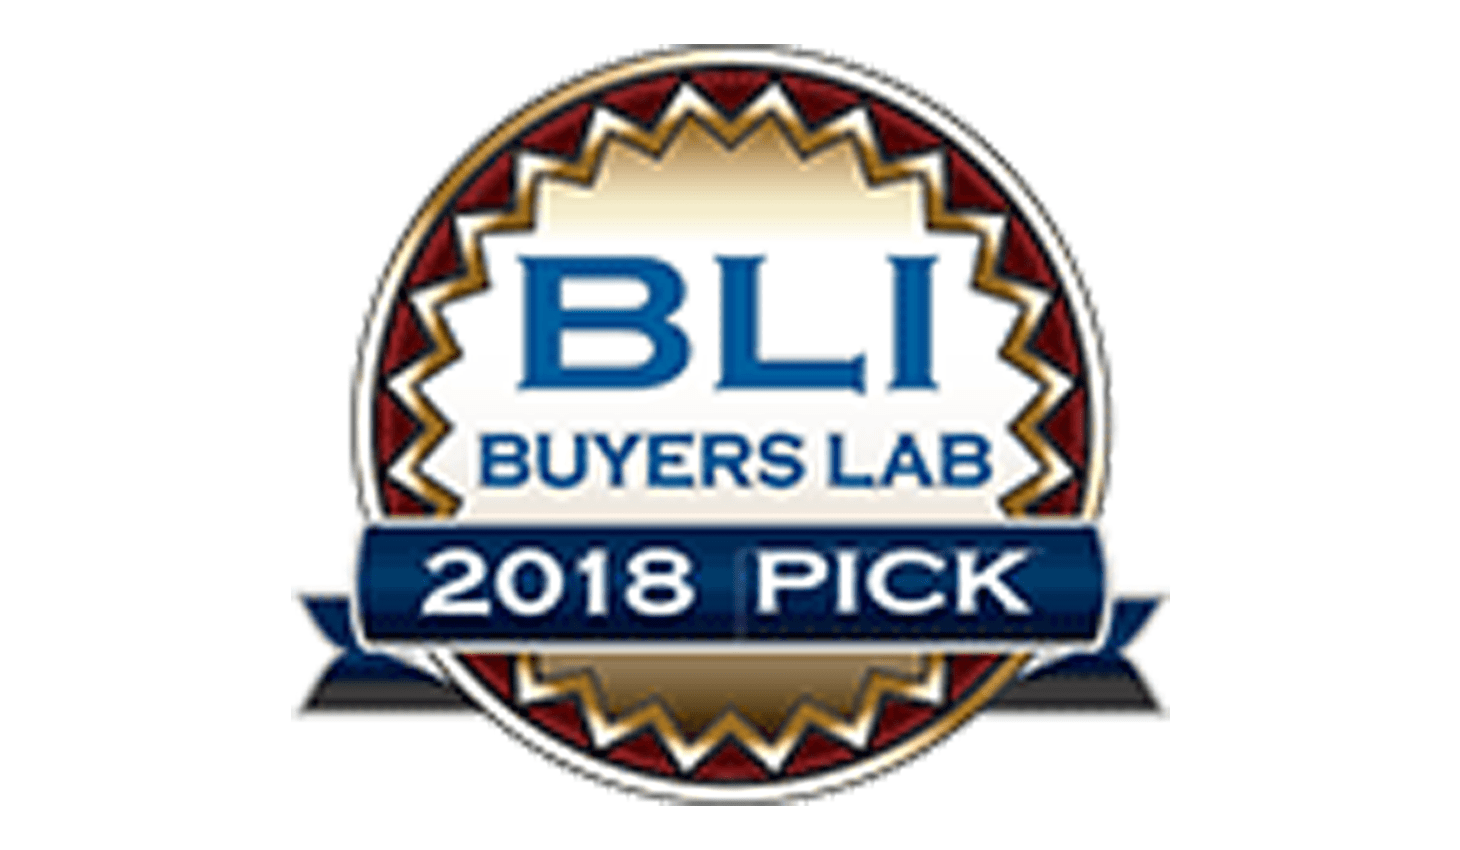 BLI buyers lab 2018 pick